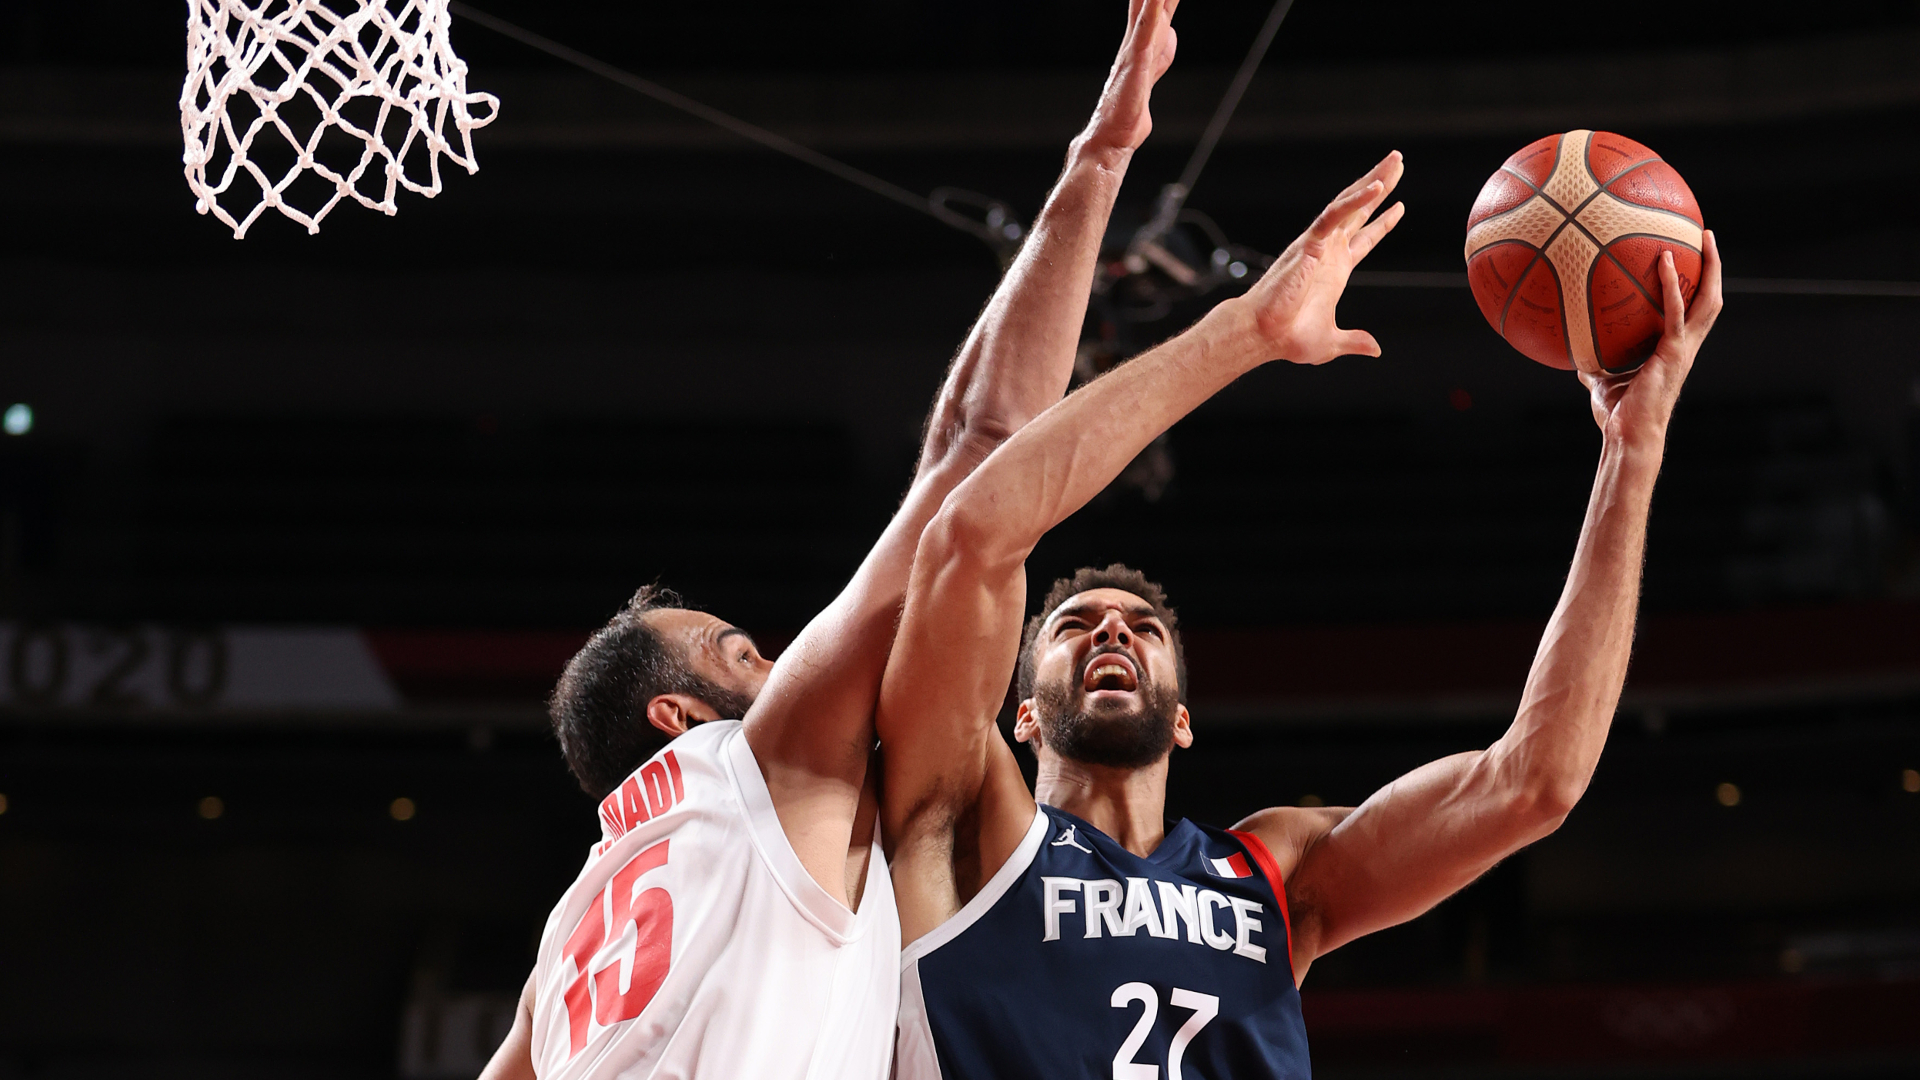 Olympic Men's Basketball Recap: France finishes atop Group A; Italy defeats Nigeria